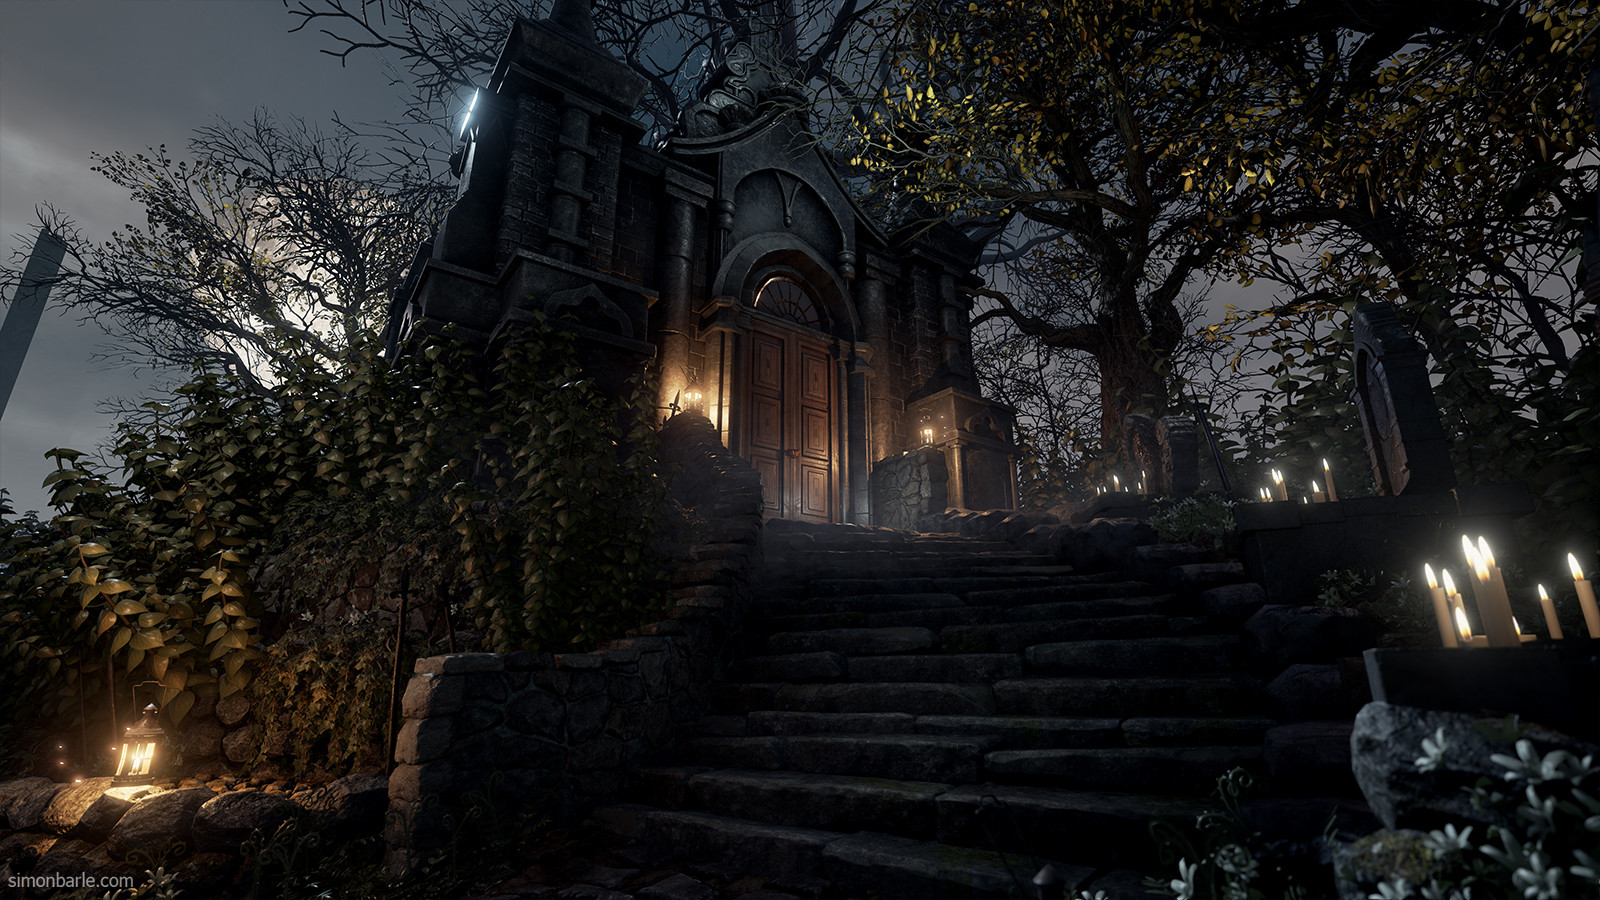 bloodborne unreal engine 4 (3)